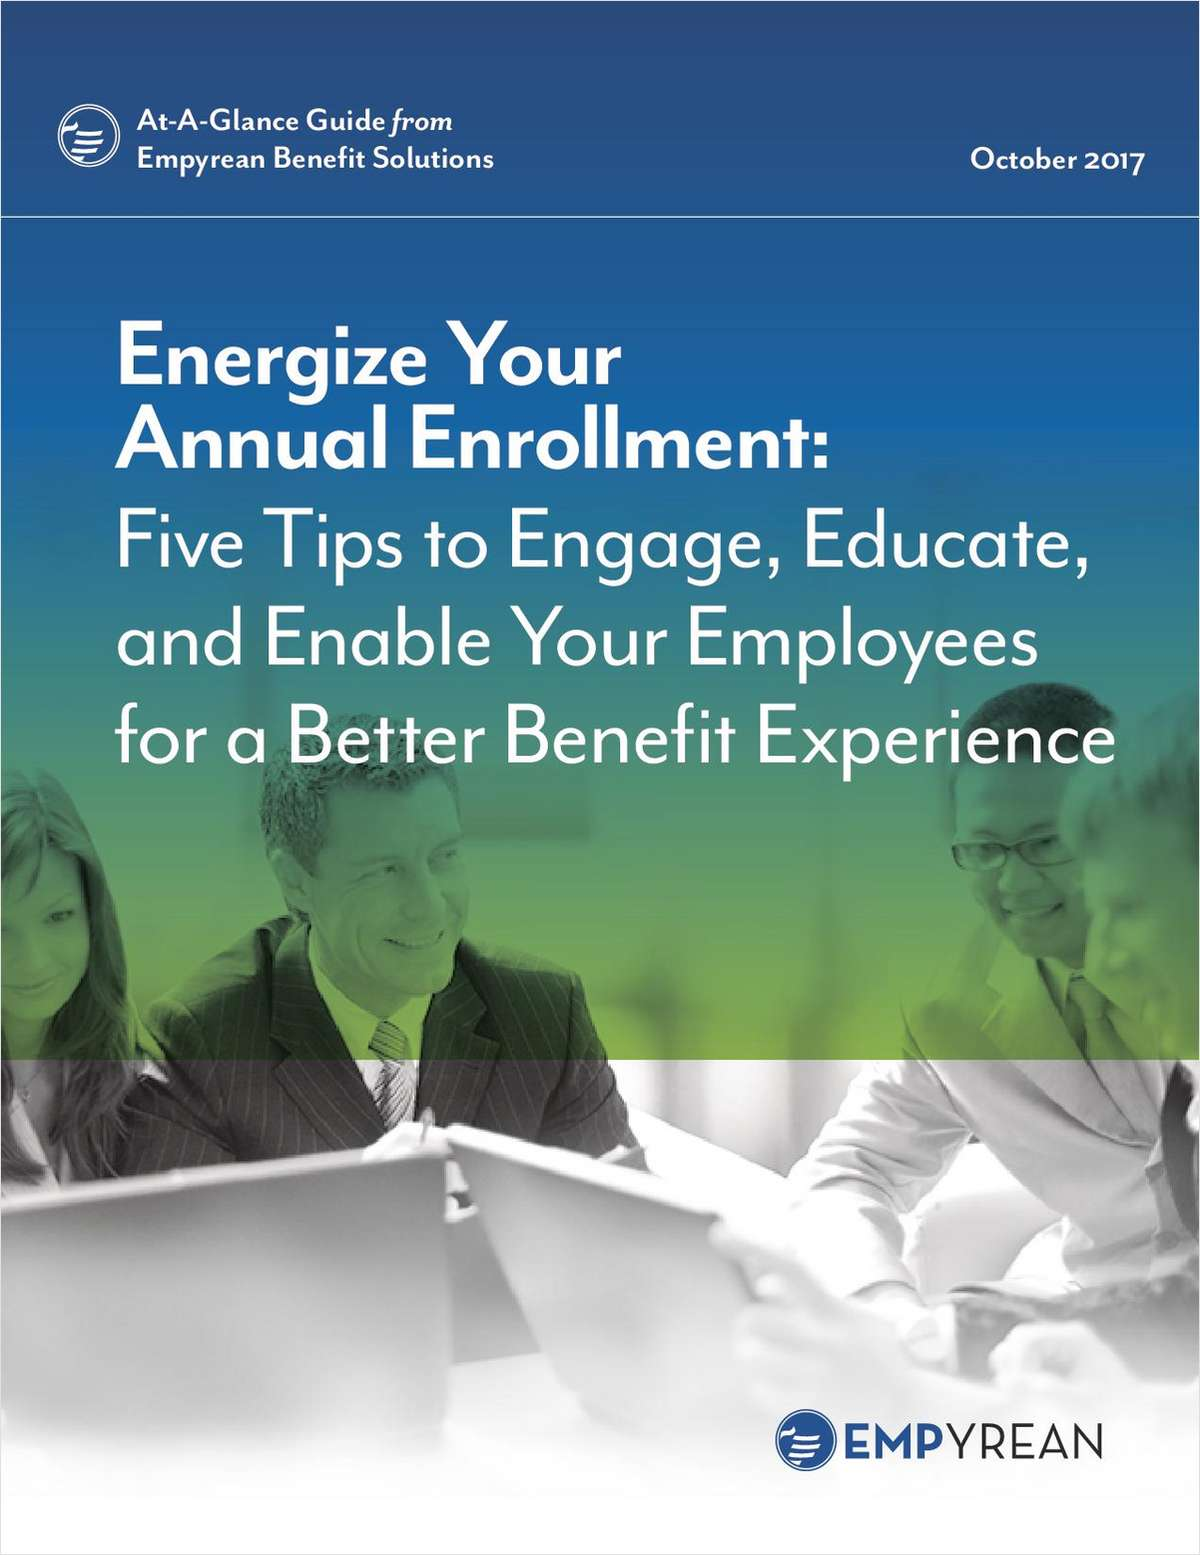 Energize Your Annual Enrollment: Five Tips to Engage, Educate, and Enable Your Employees for a Better Benefit Experience